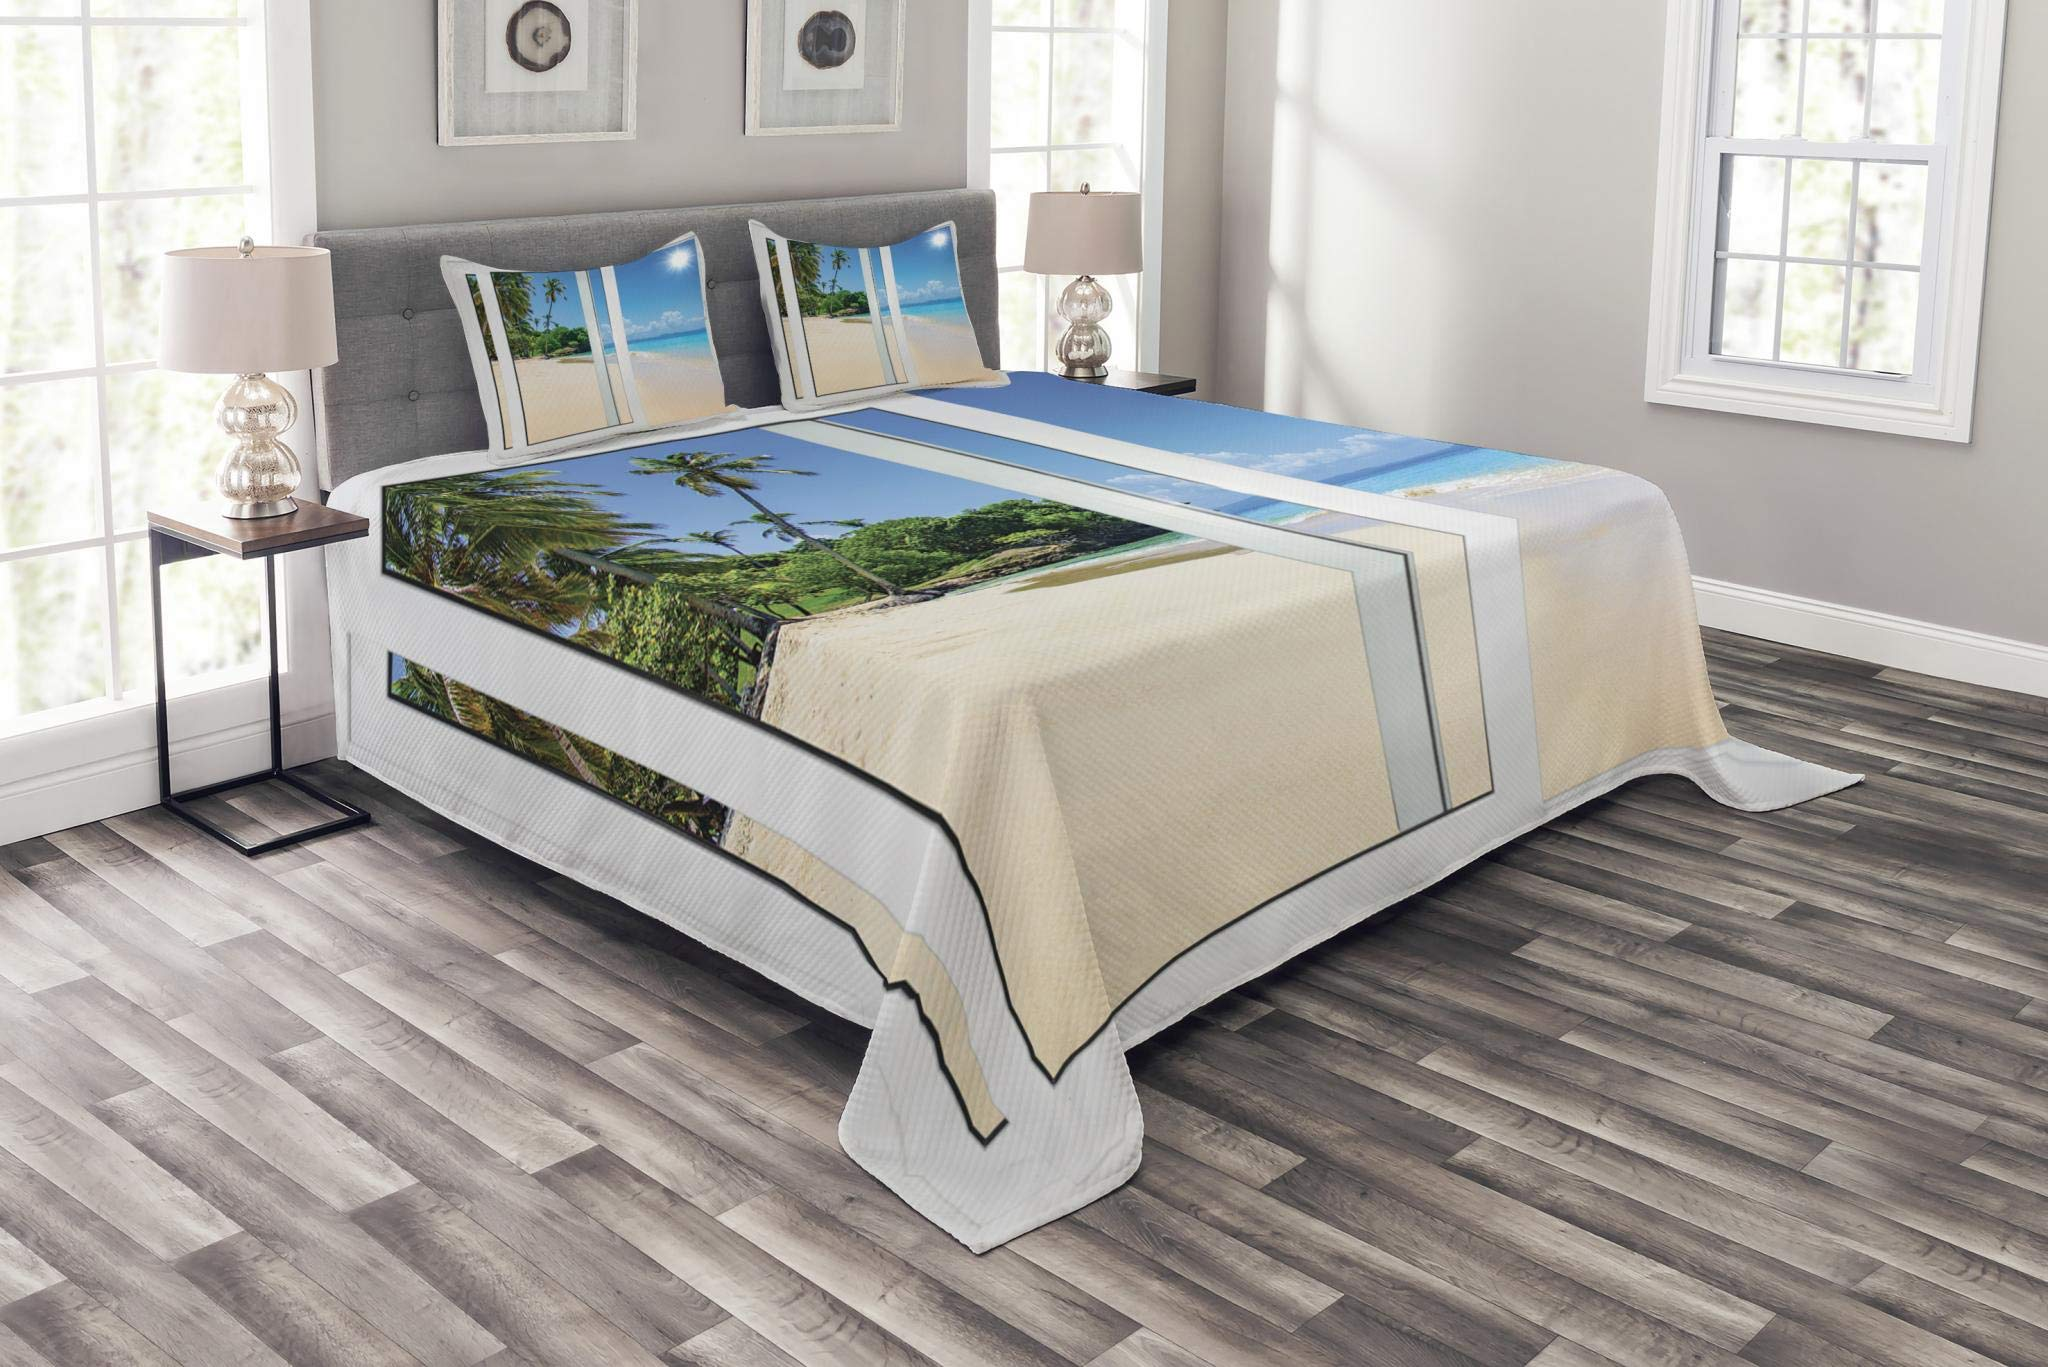 Ambesonne Ocean Bedspread Set Queen Size, Ocean View from The Window on The Island Scenery Traveling Destination, Decorative Quilted 3 Piece Coverlet Set with 2 Pillow Shams, Cream Blue Aqua White